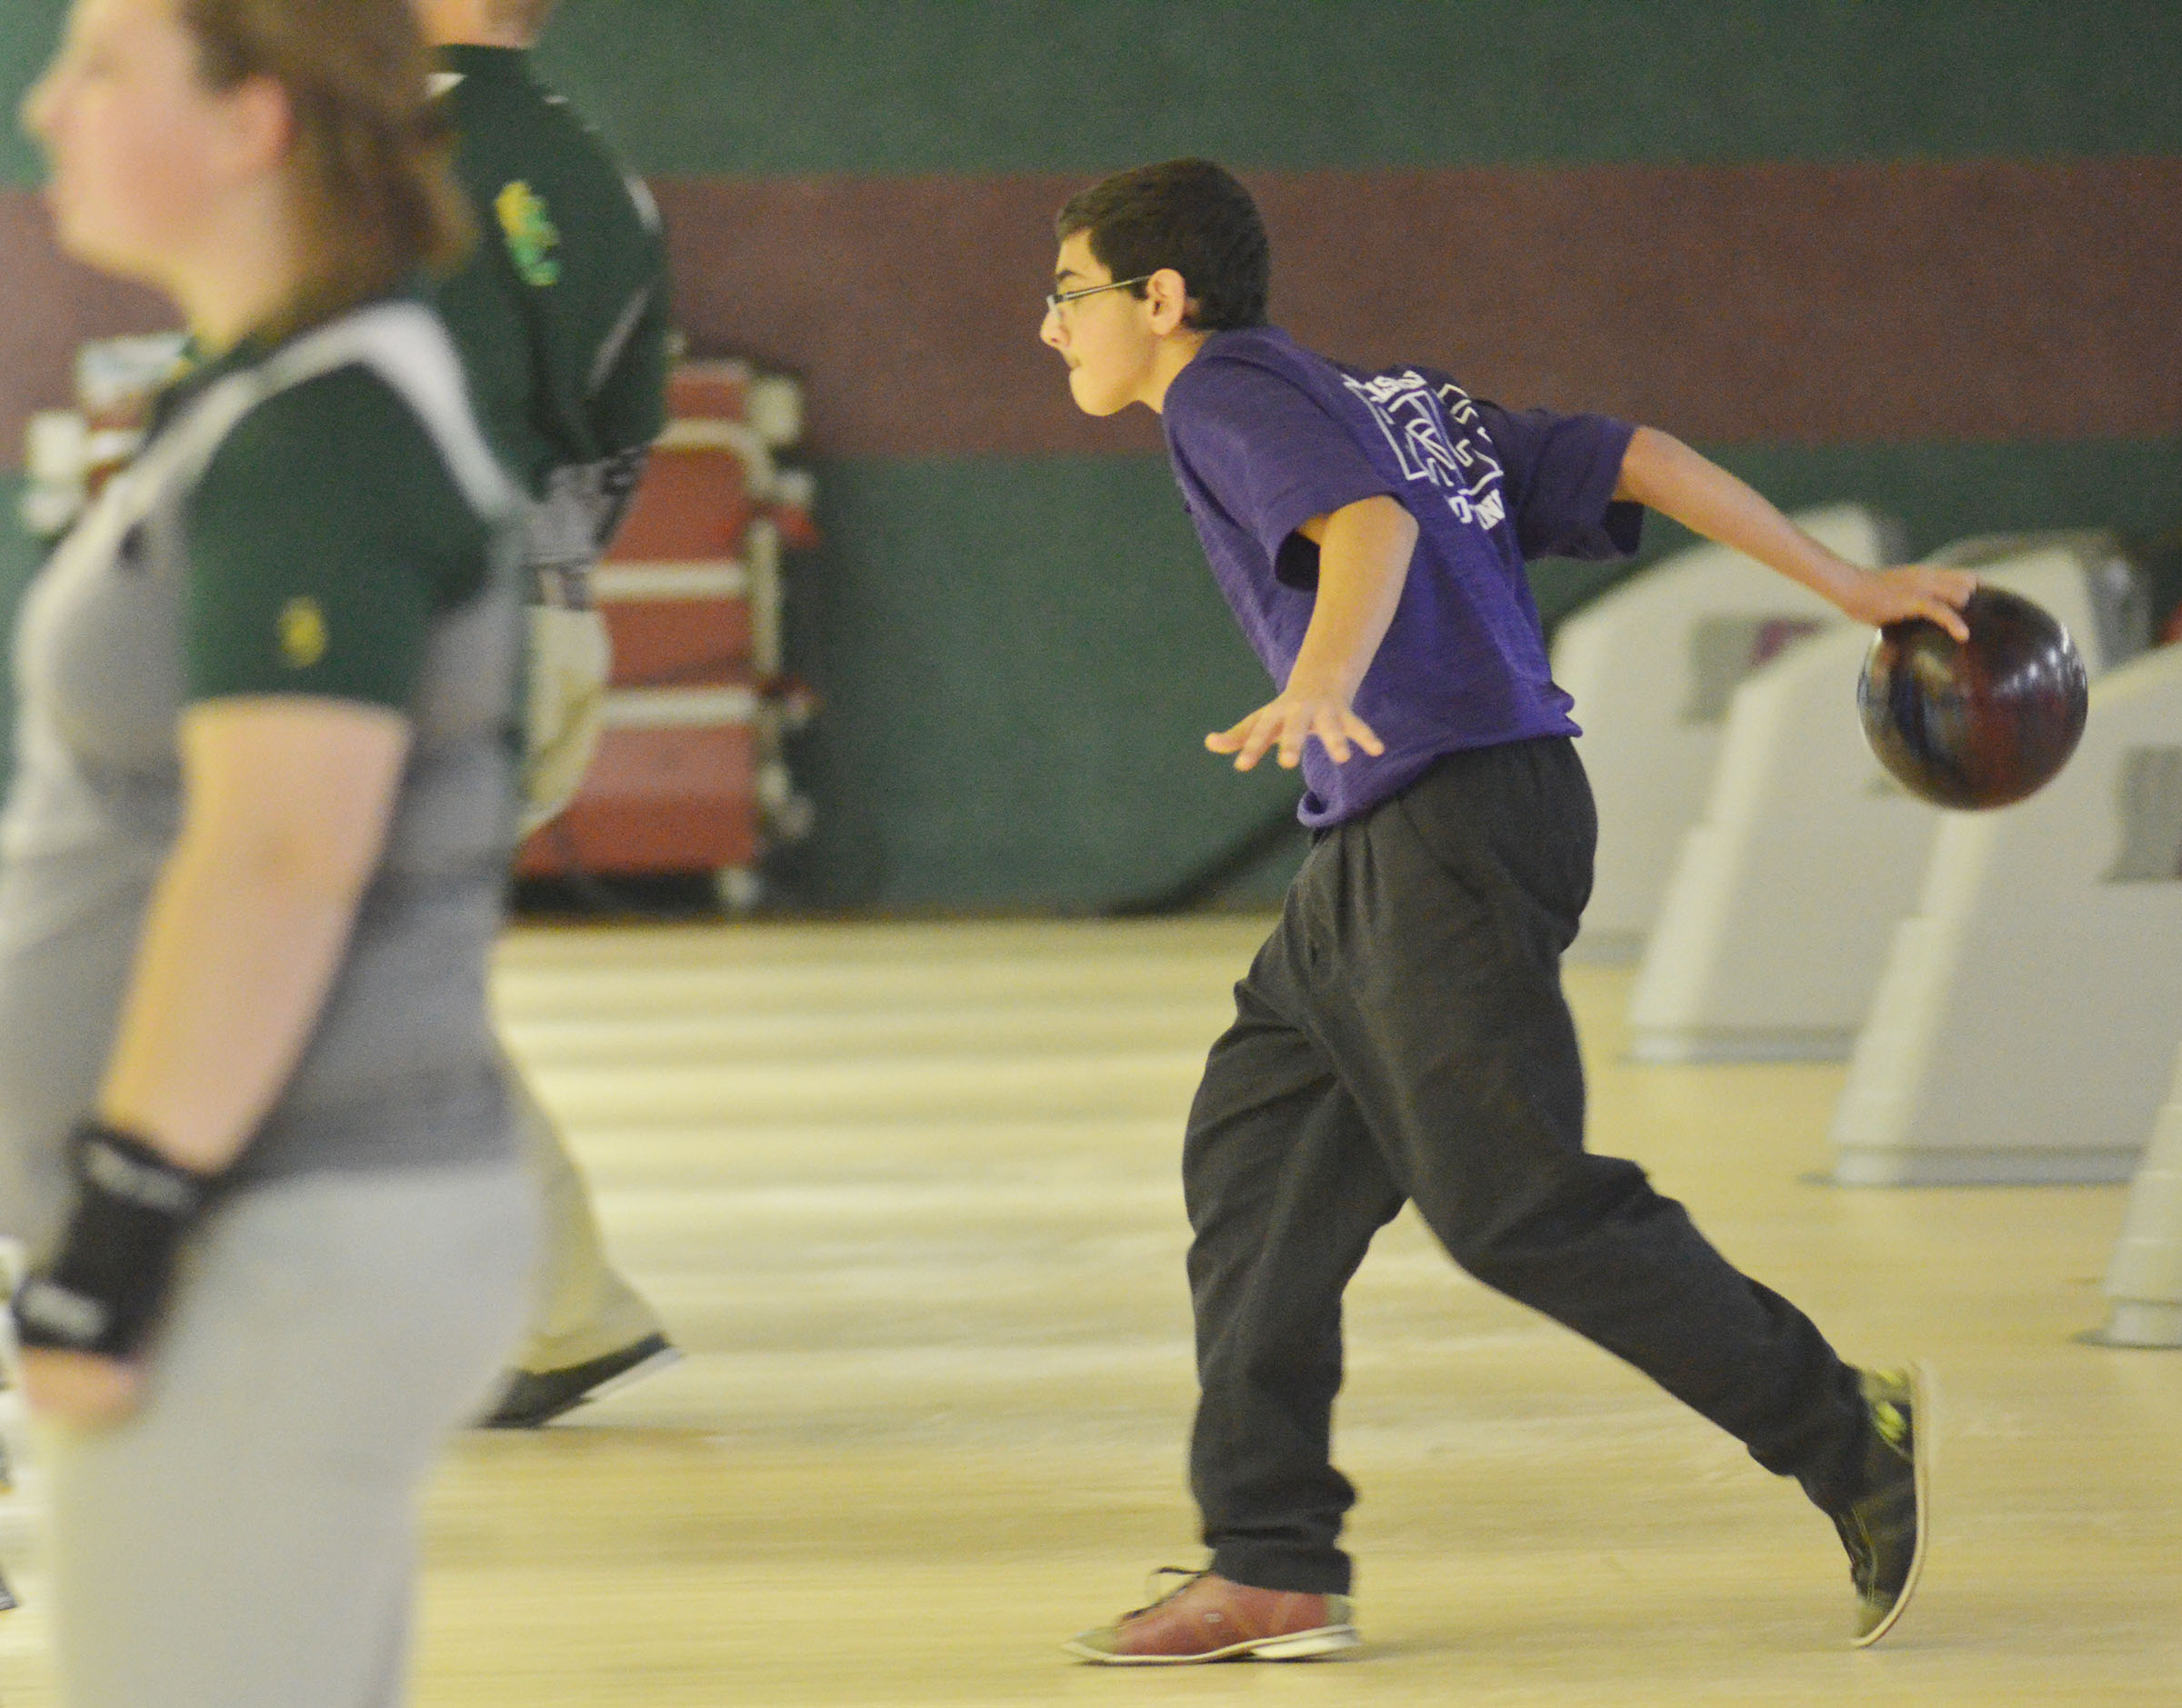 Campbellsville Middle School eighth-grader Hassan Alabusalim bowls.